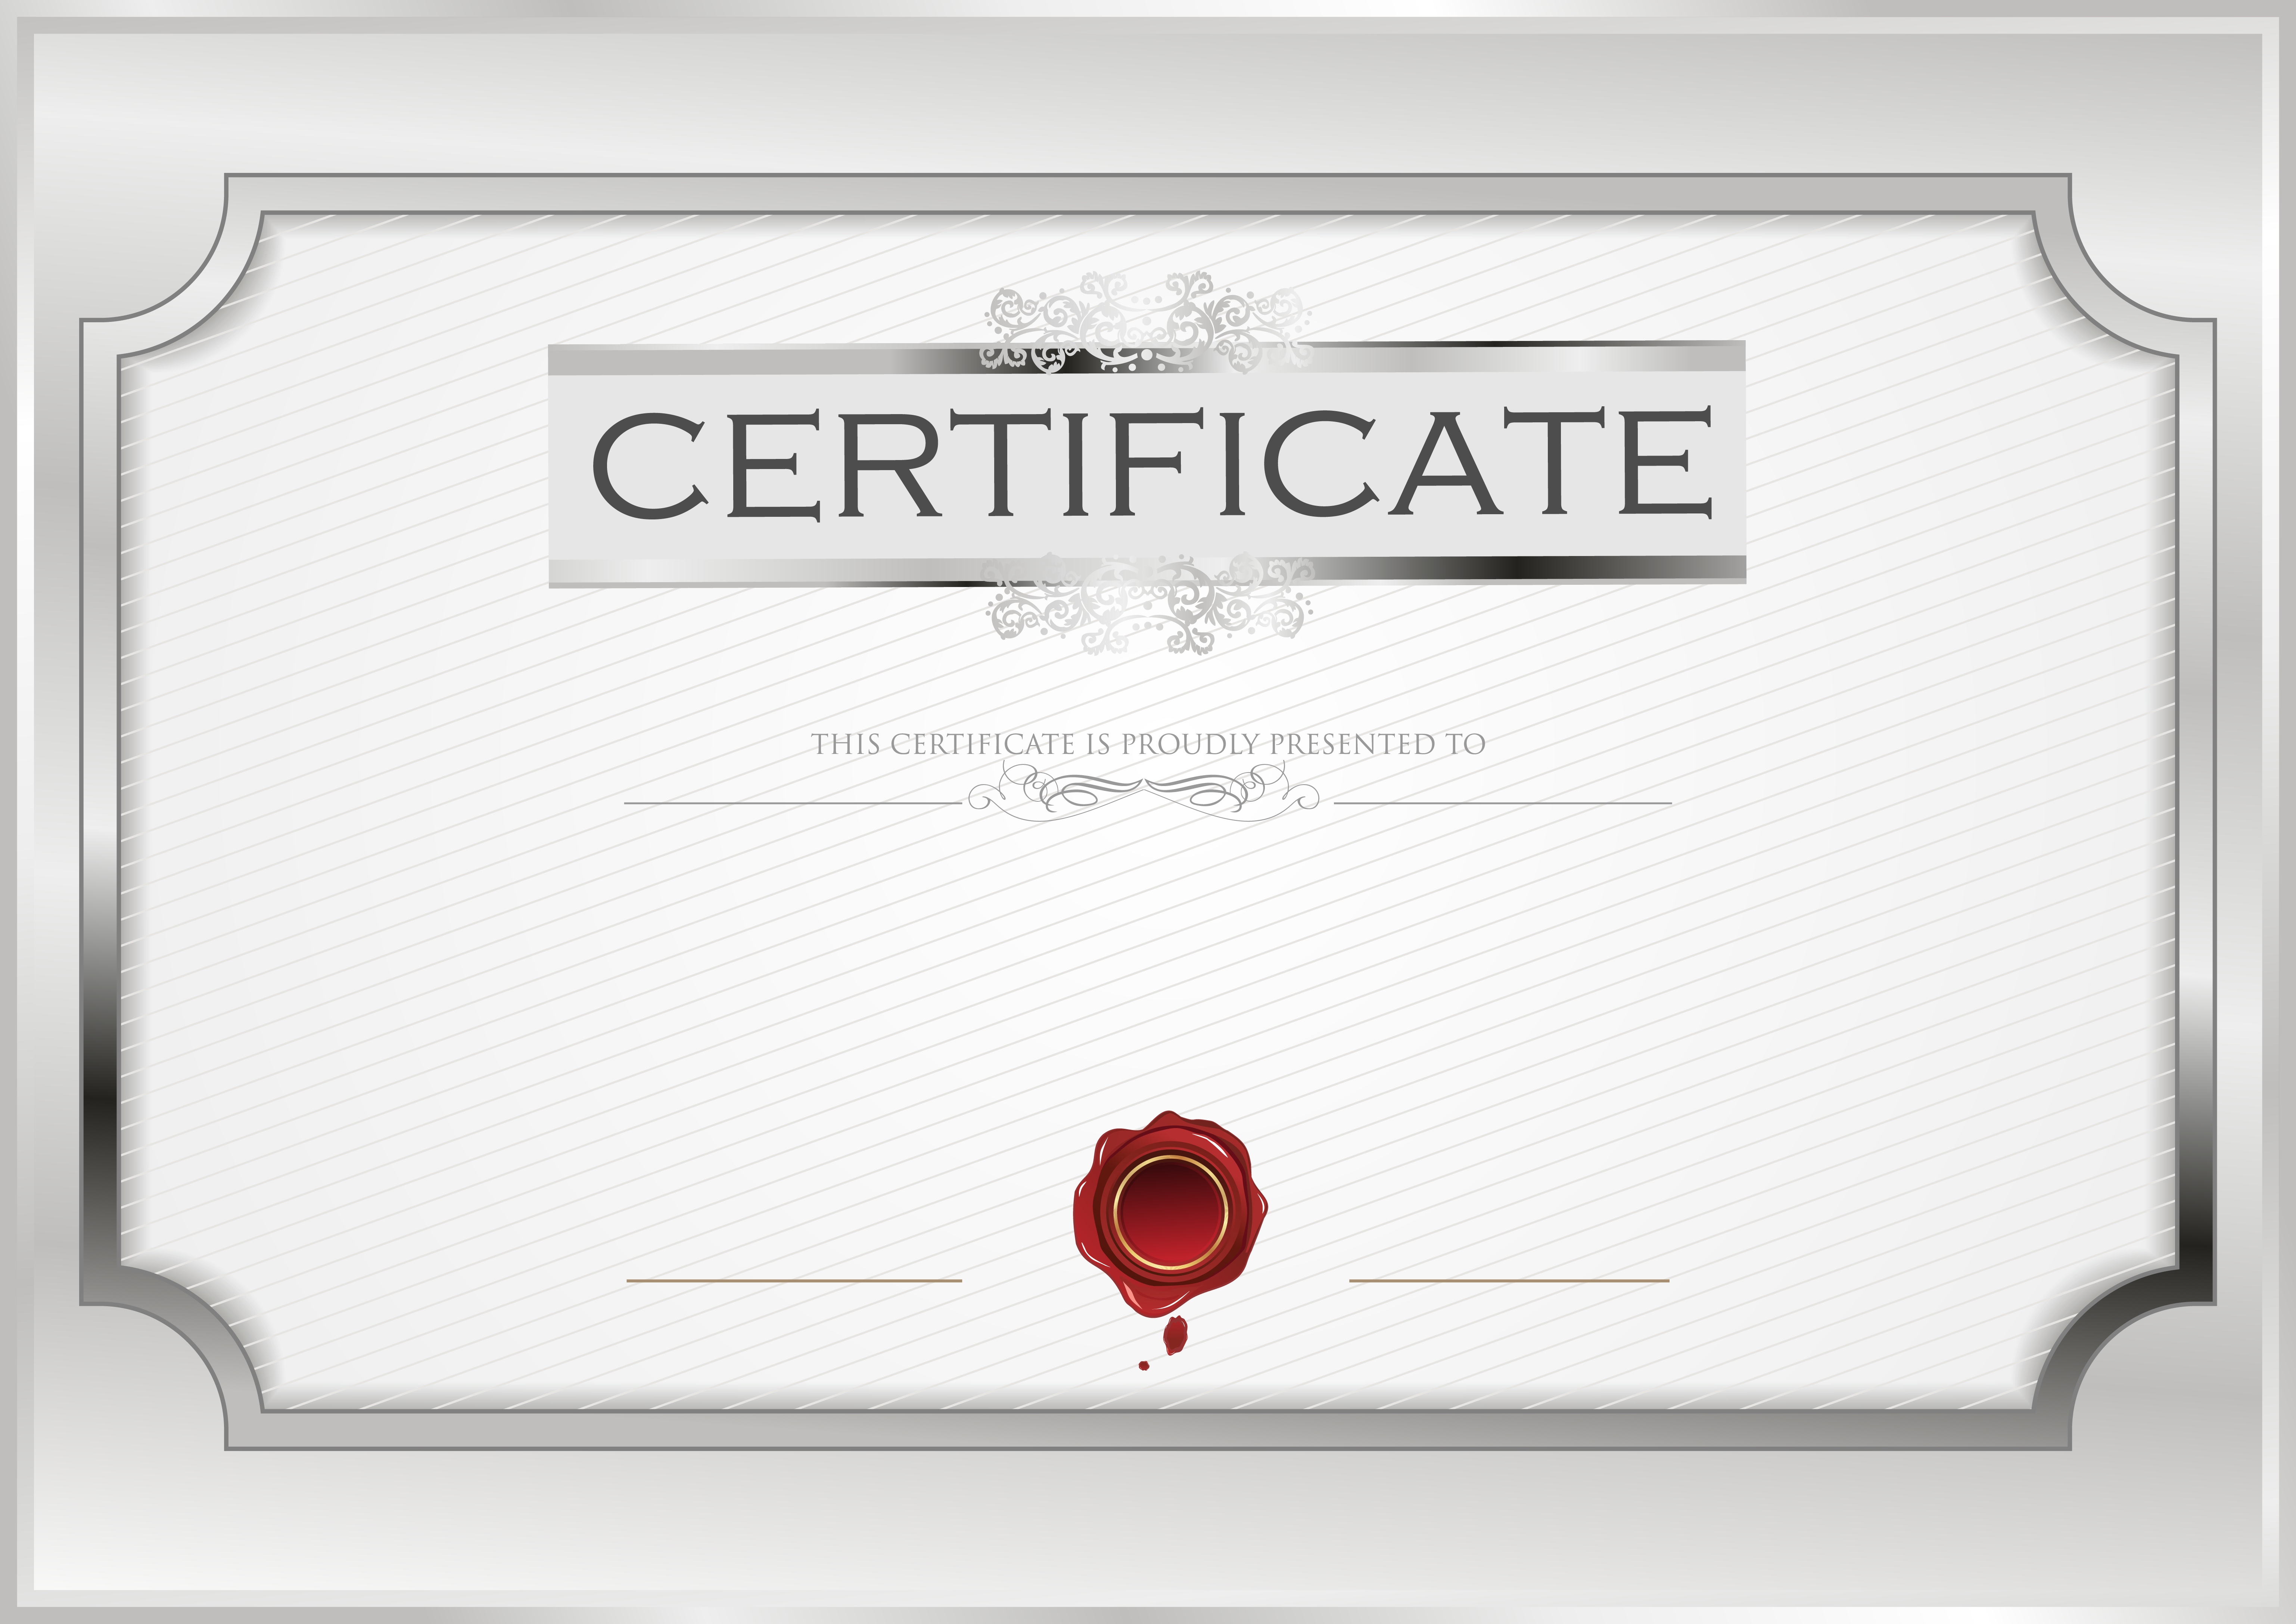 Certificate Template Blank Image  Gallery Yopriceville  High